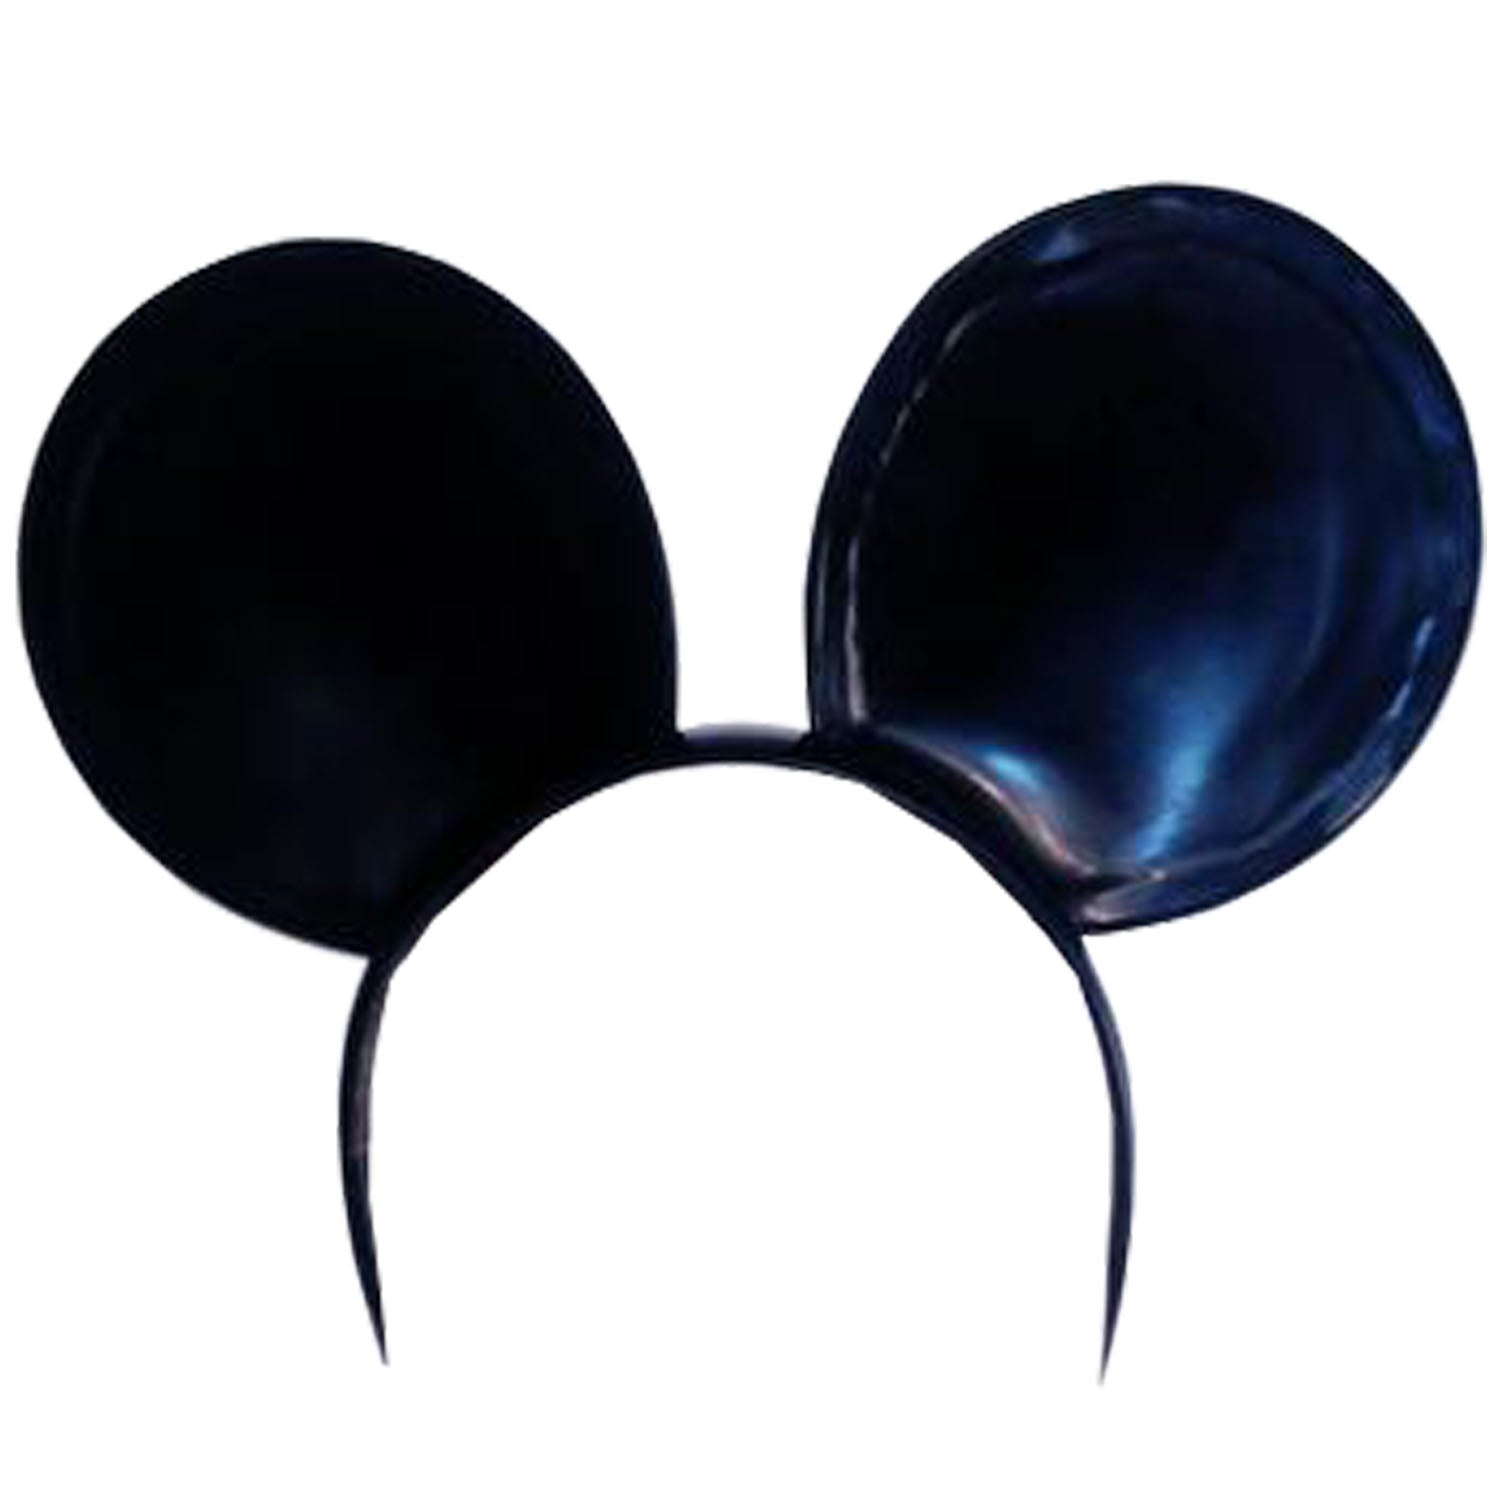 Mouse Ears - Vex Inc. | Latex Clothing